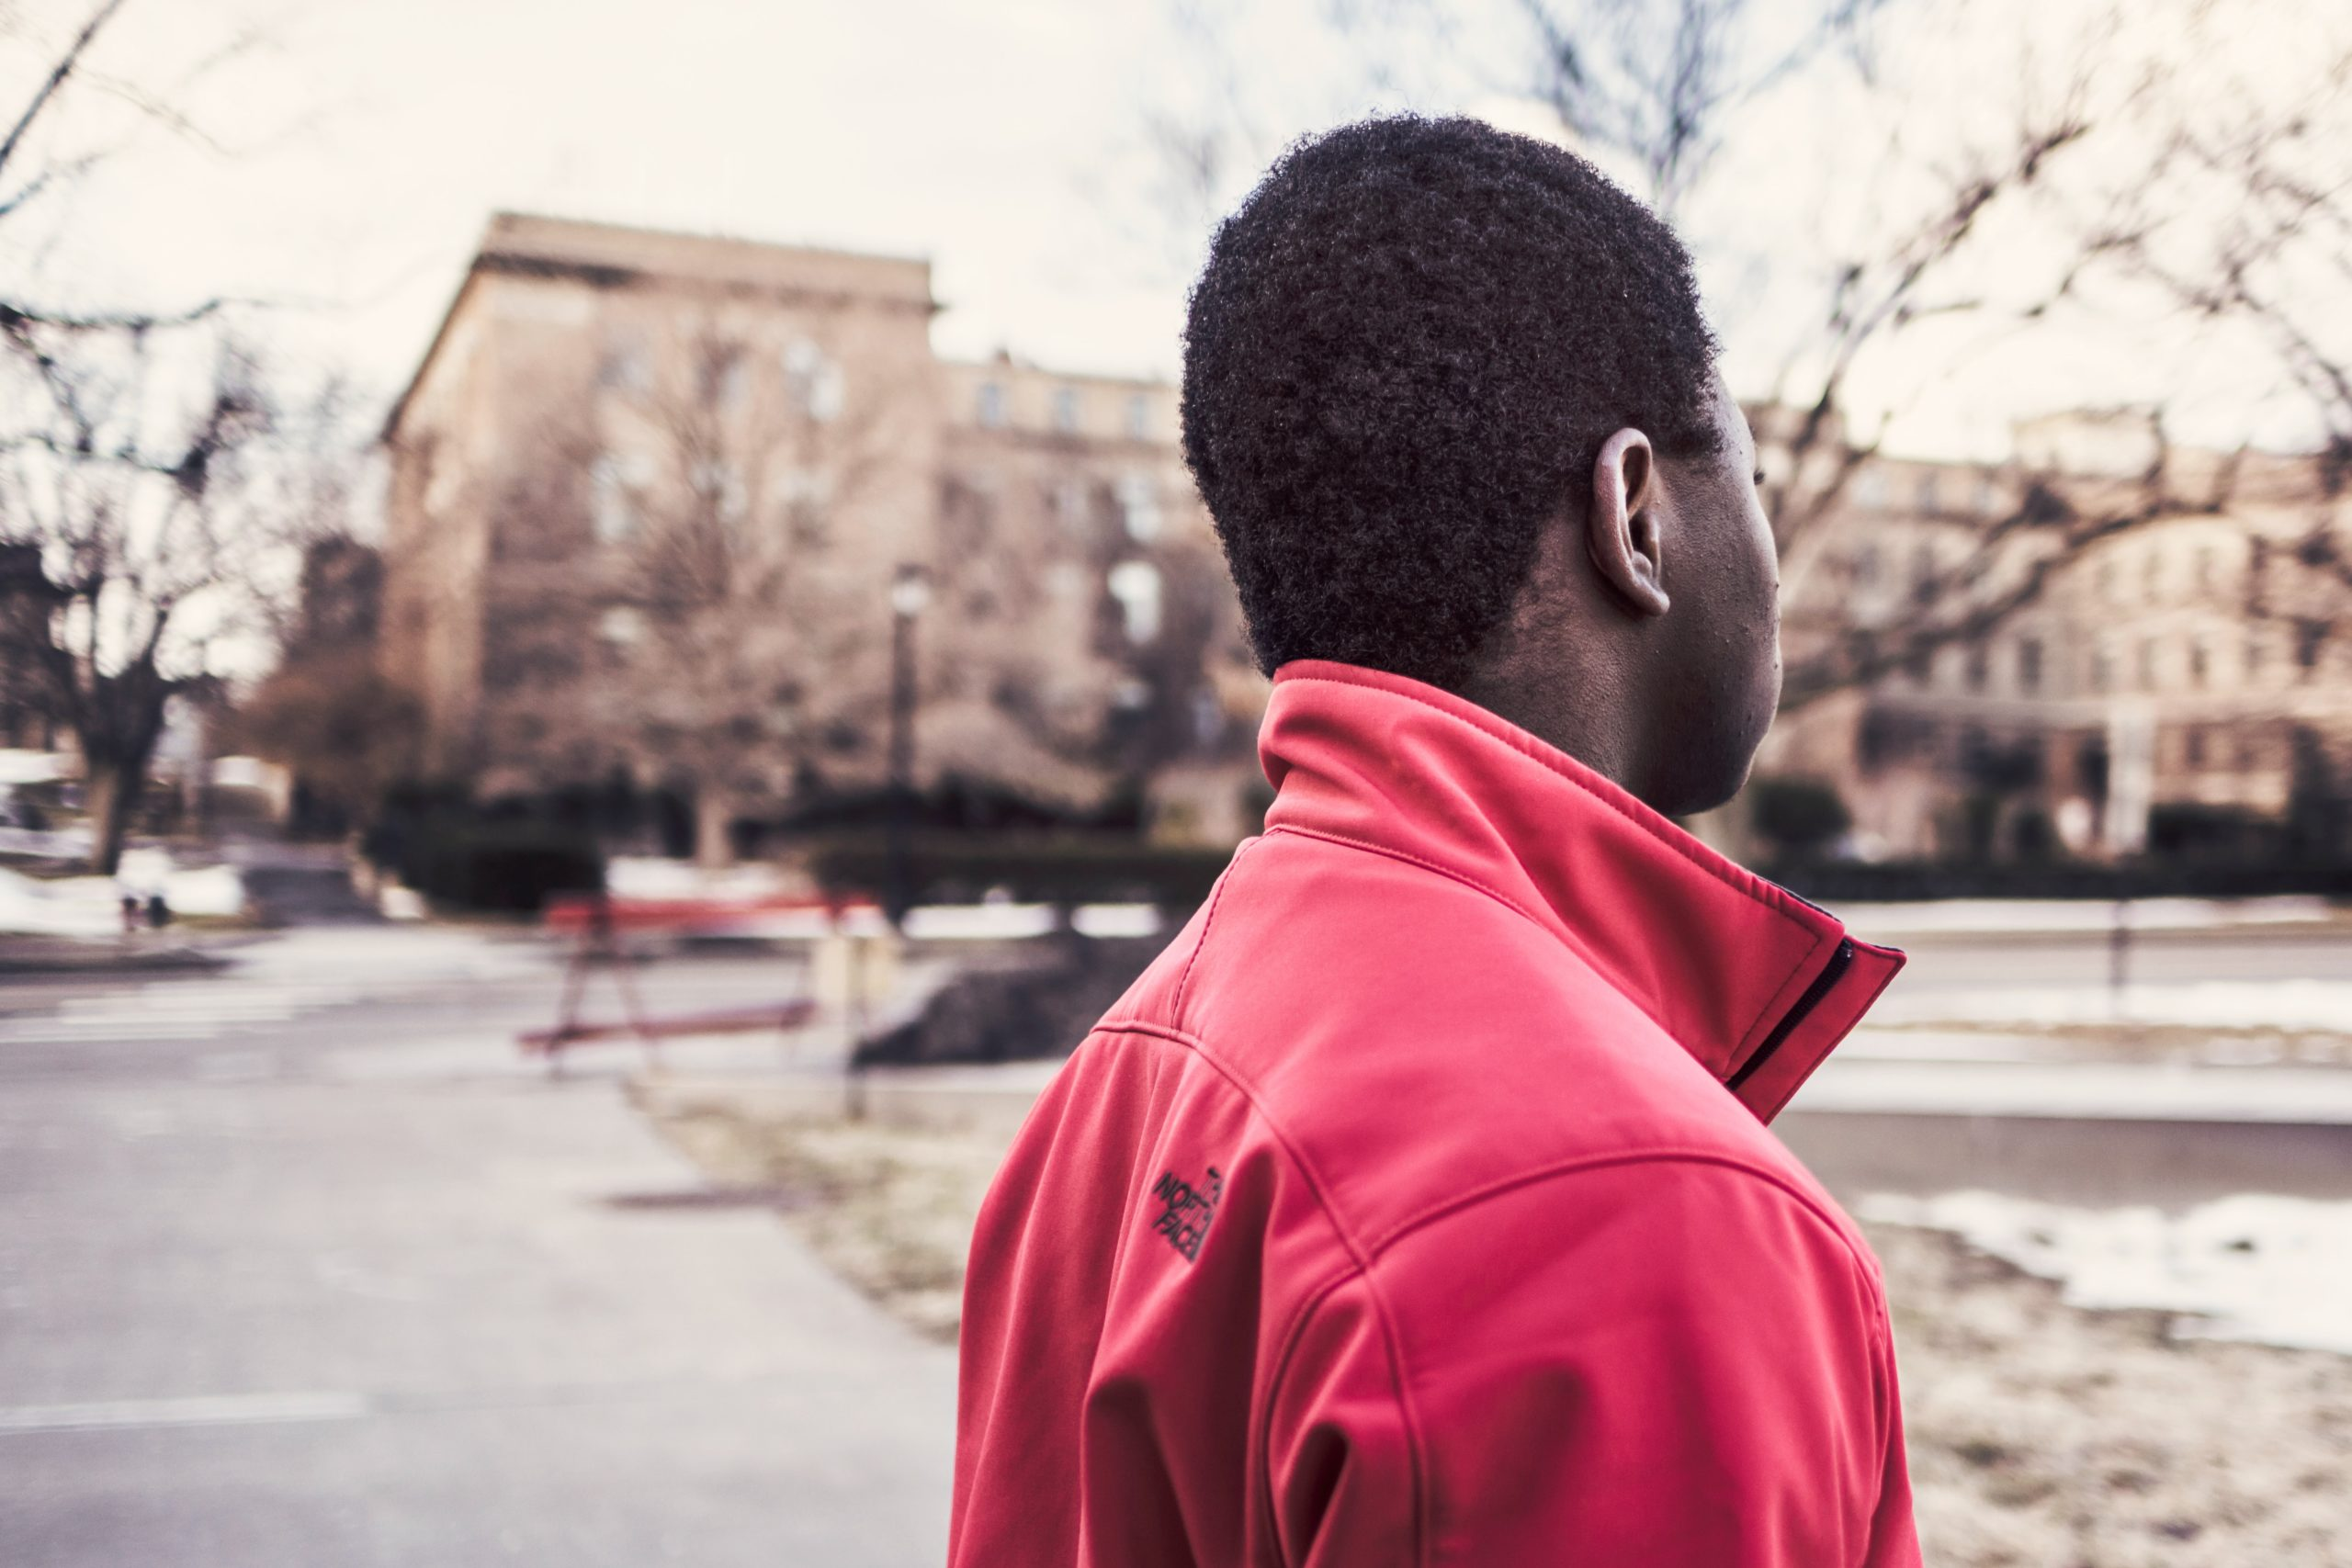 SEN safety: a young man looks into the distance wearing a red coat